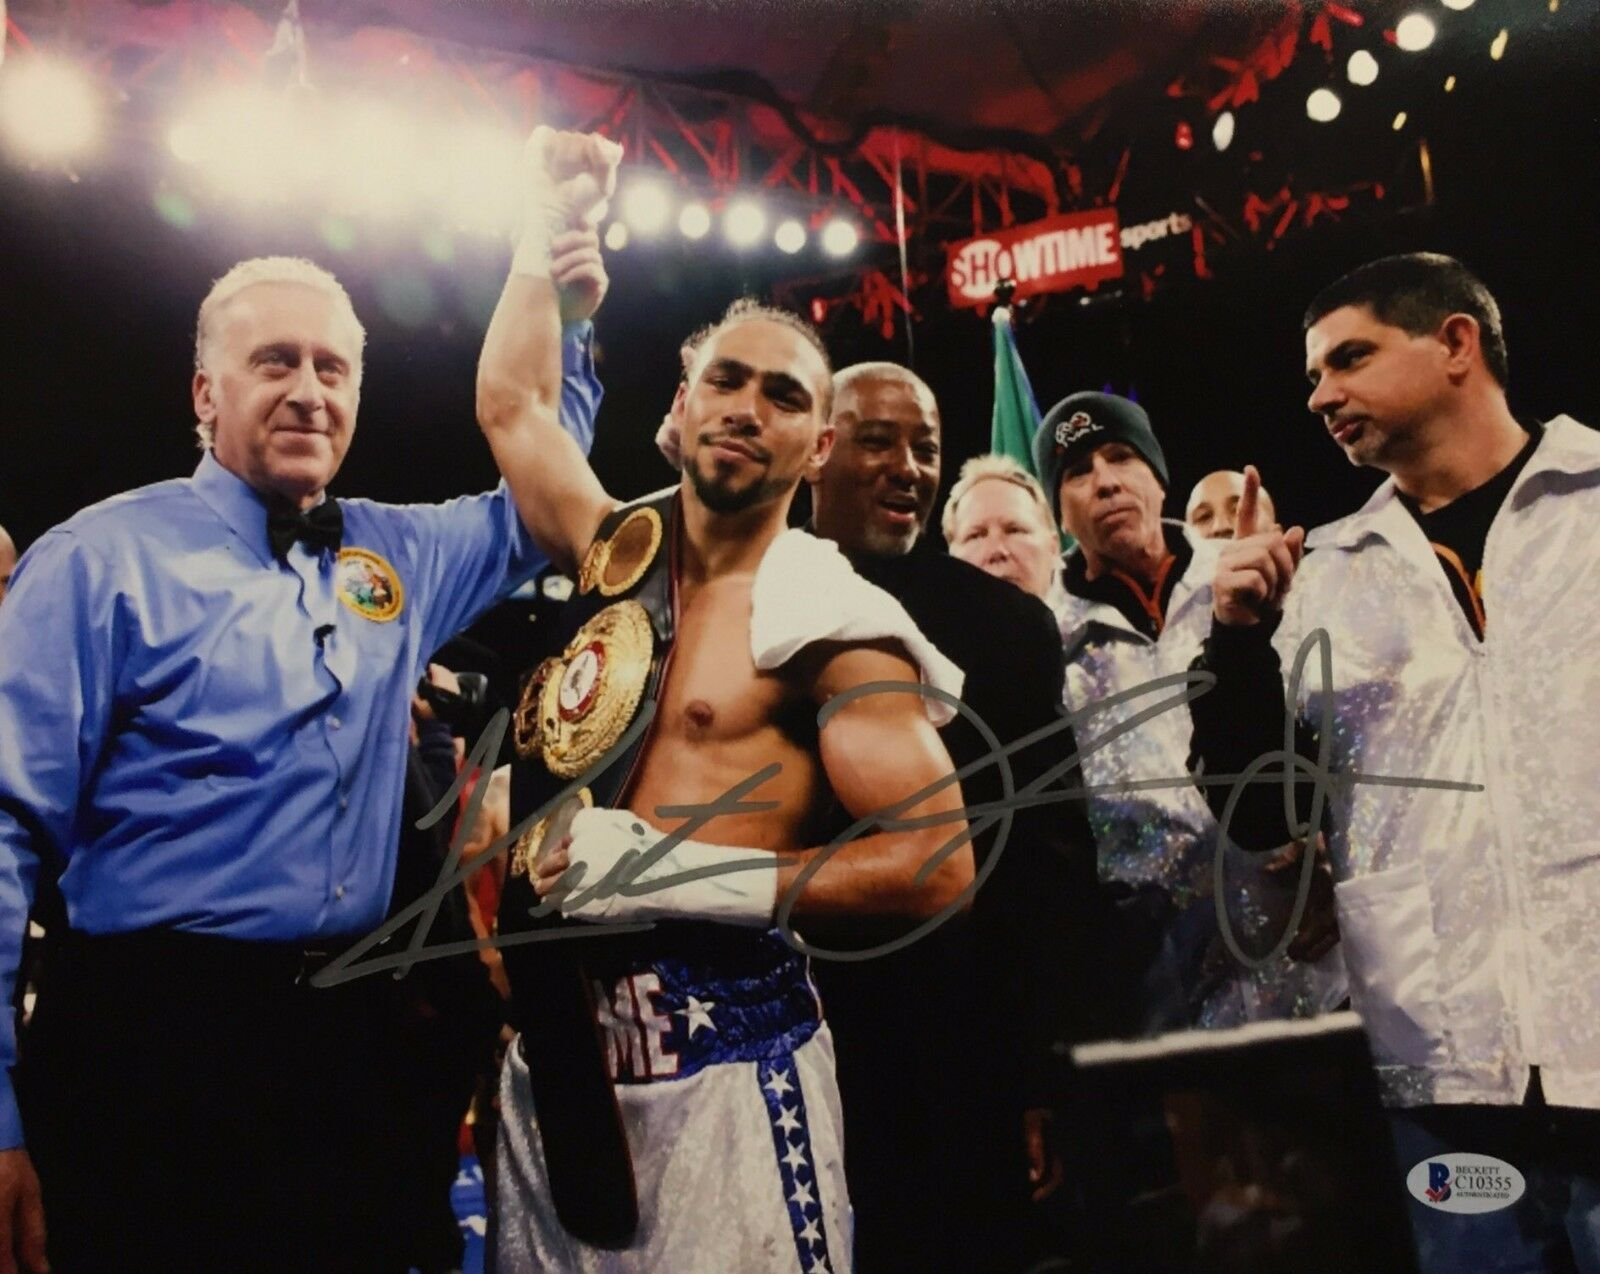 Keith Thurman Signed 11x14 Boxing Photo BAS Beckett C10355